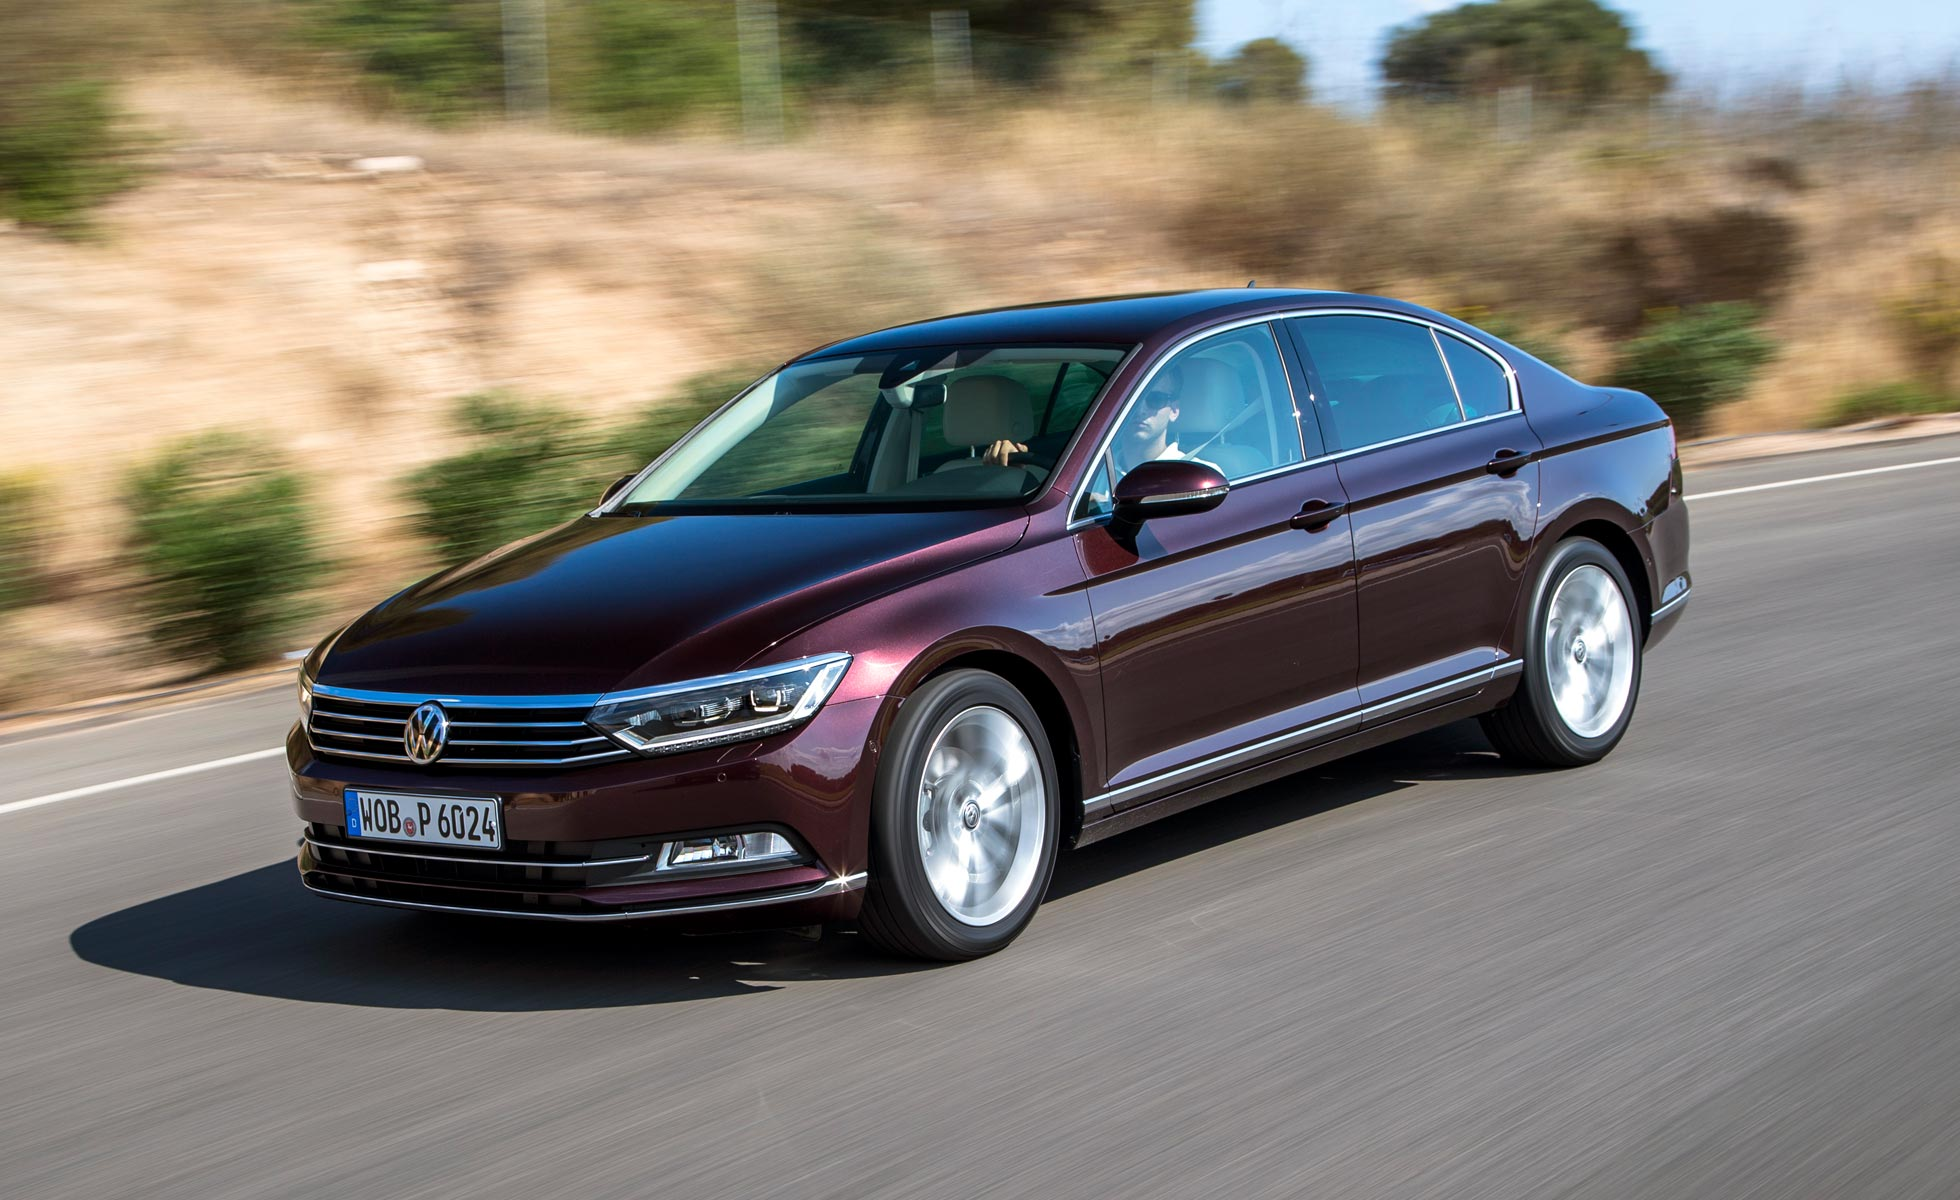 volkswagen passat 2015 first drive review motoring research. Black Bedroom Furniture Sets. Home Design Ideas